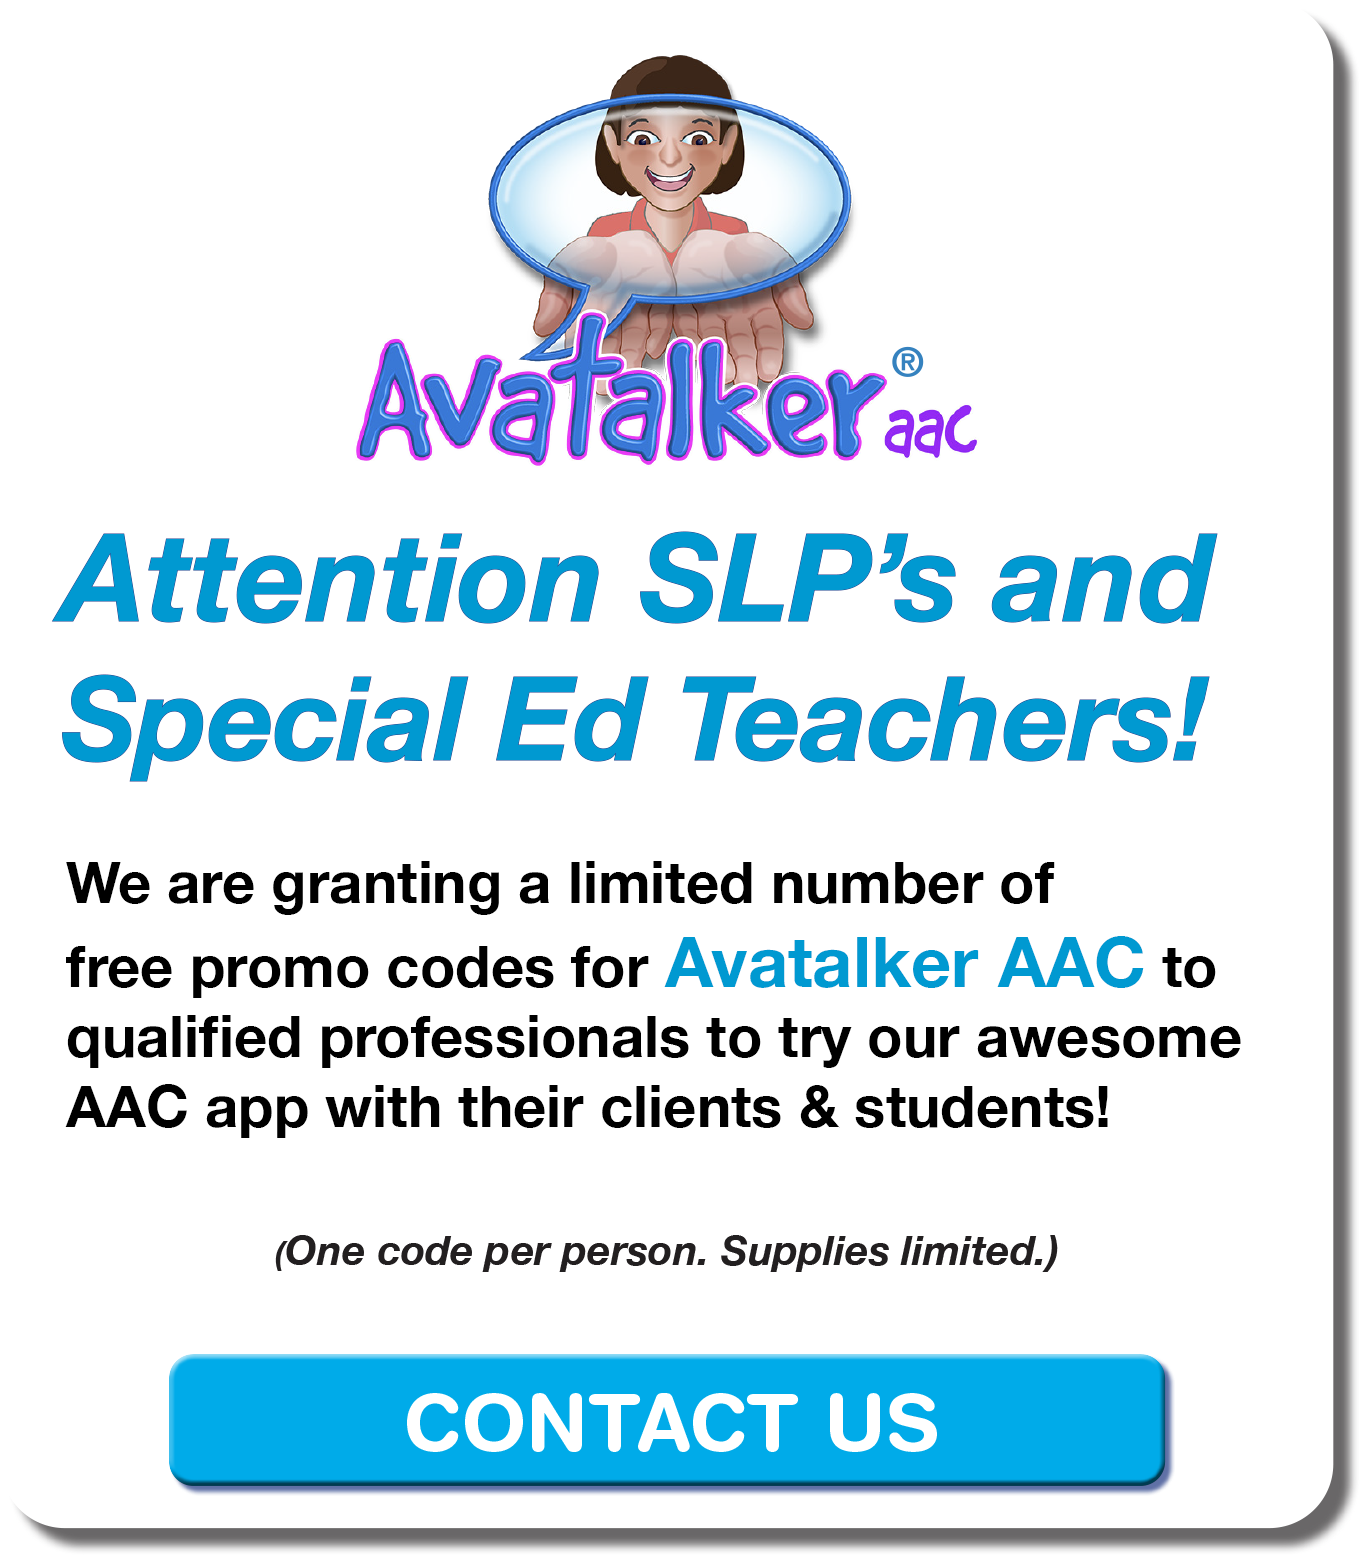 Free promo code for Avatalker AAC